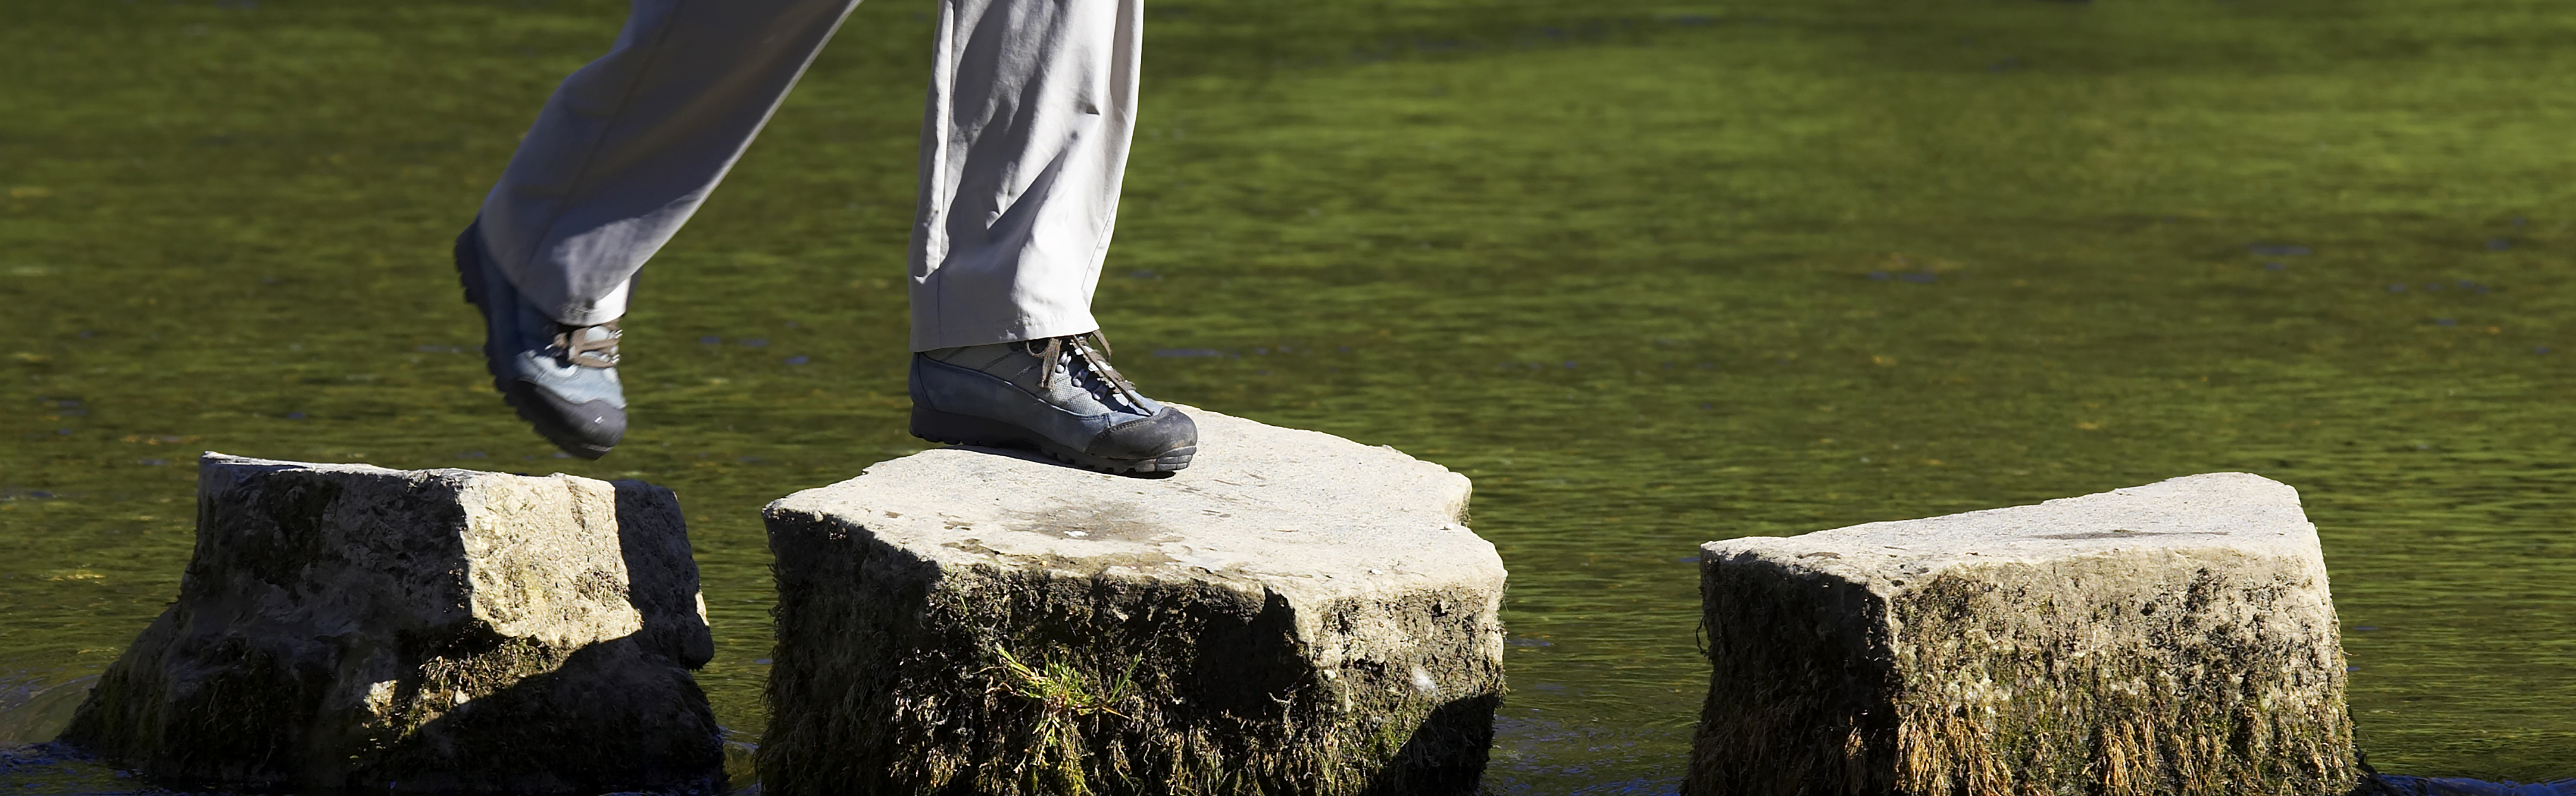 Stepping stones-cropped